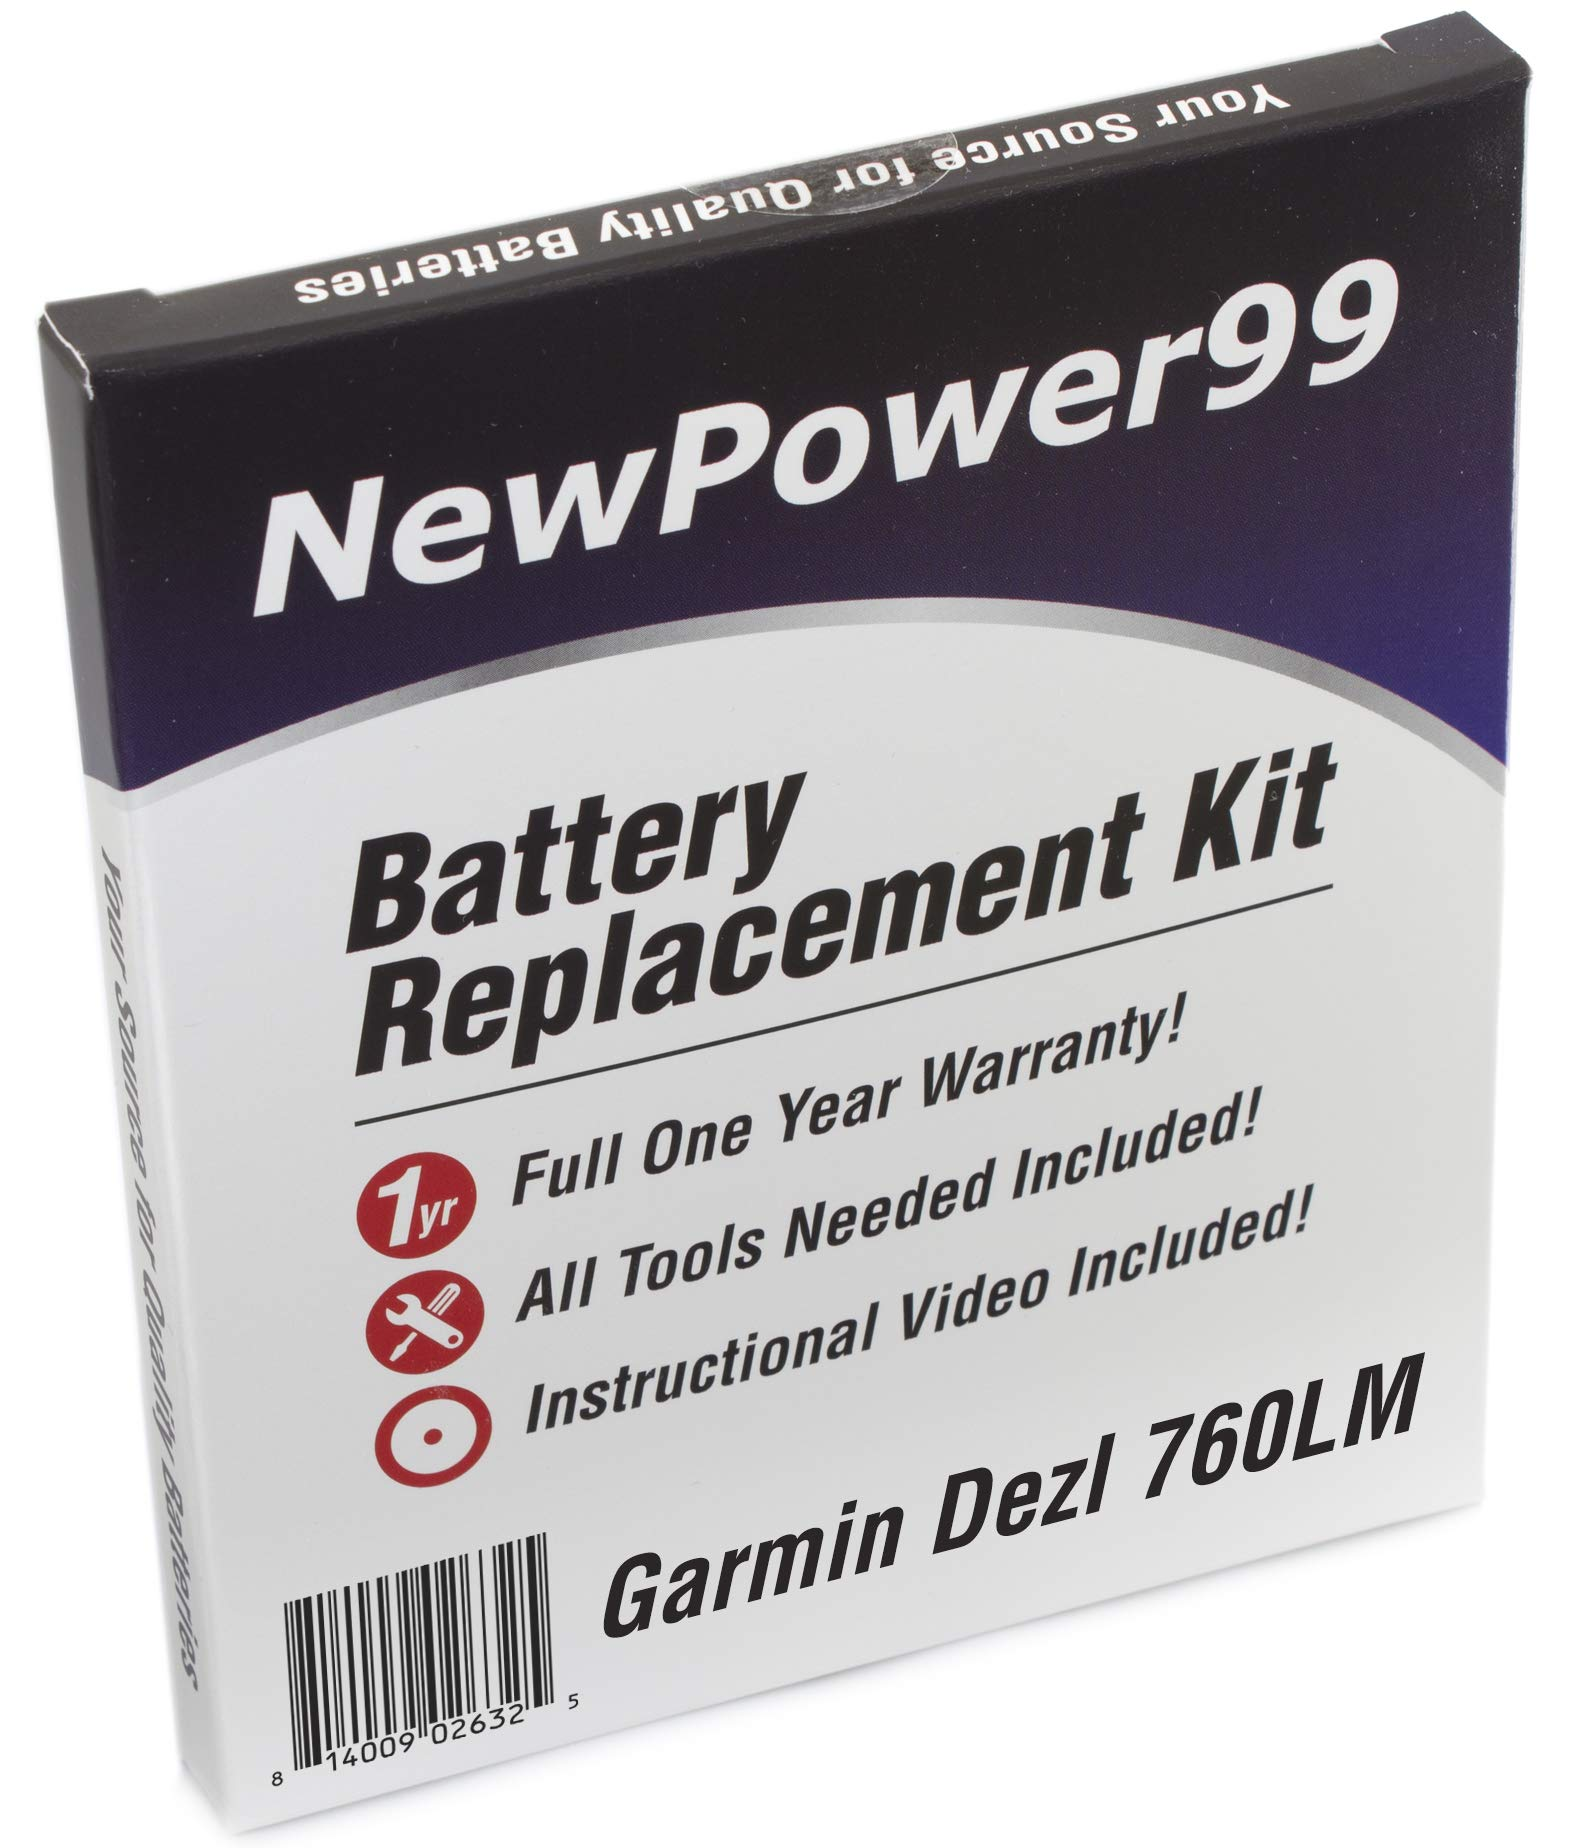 NewPower99 Battery Replacement Kit with Battery, Video Instructions and Tools for Garmin Dezl 760LM by NewPower99